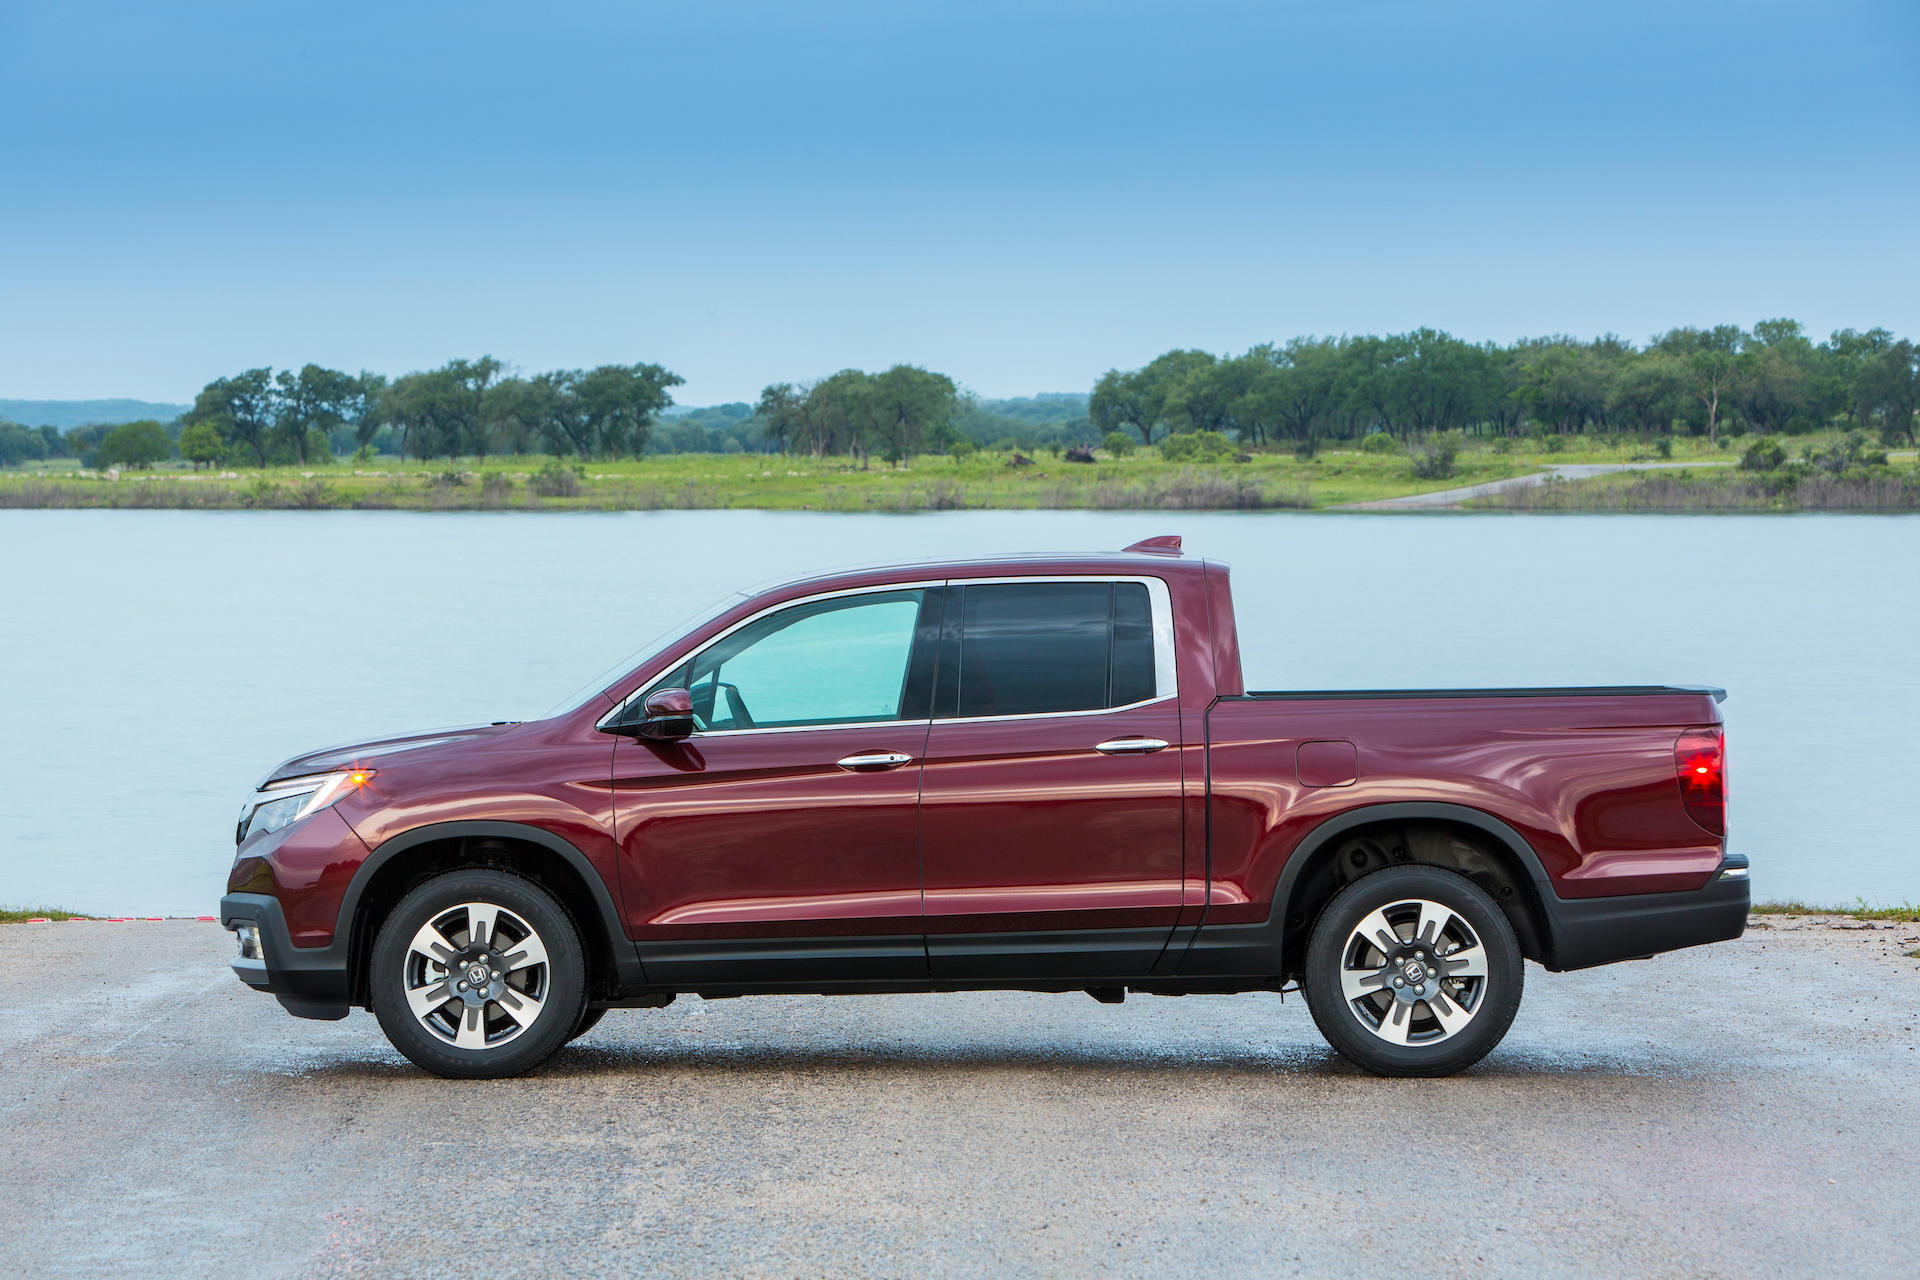 2020 Honda Ridgeline Wallpaper